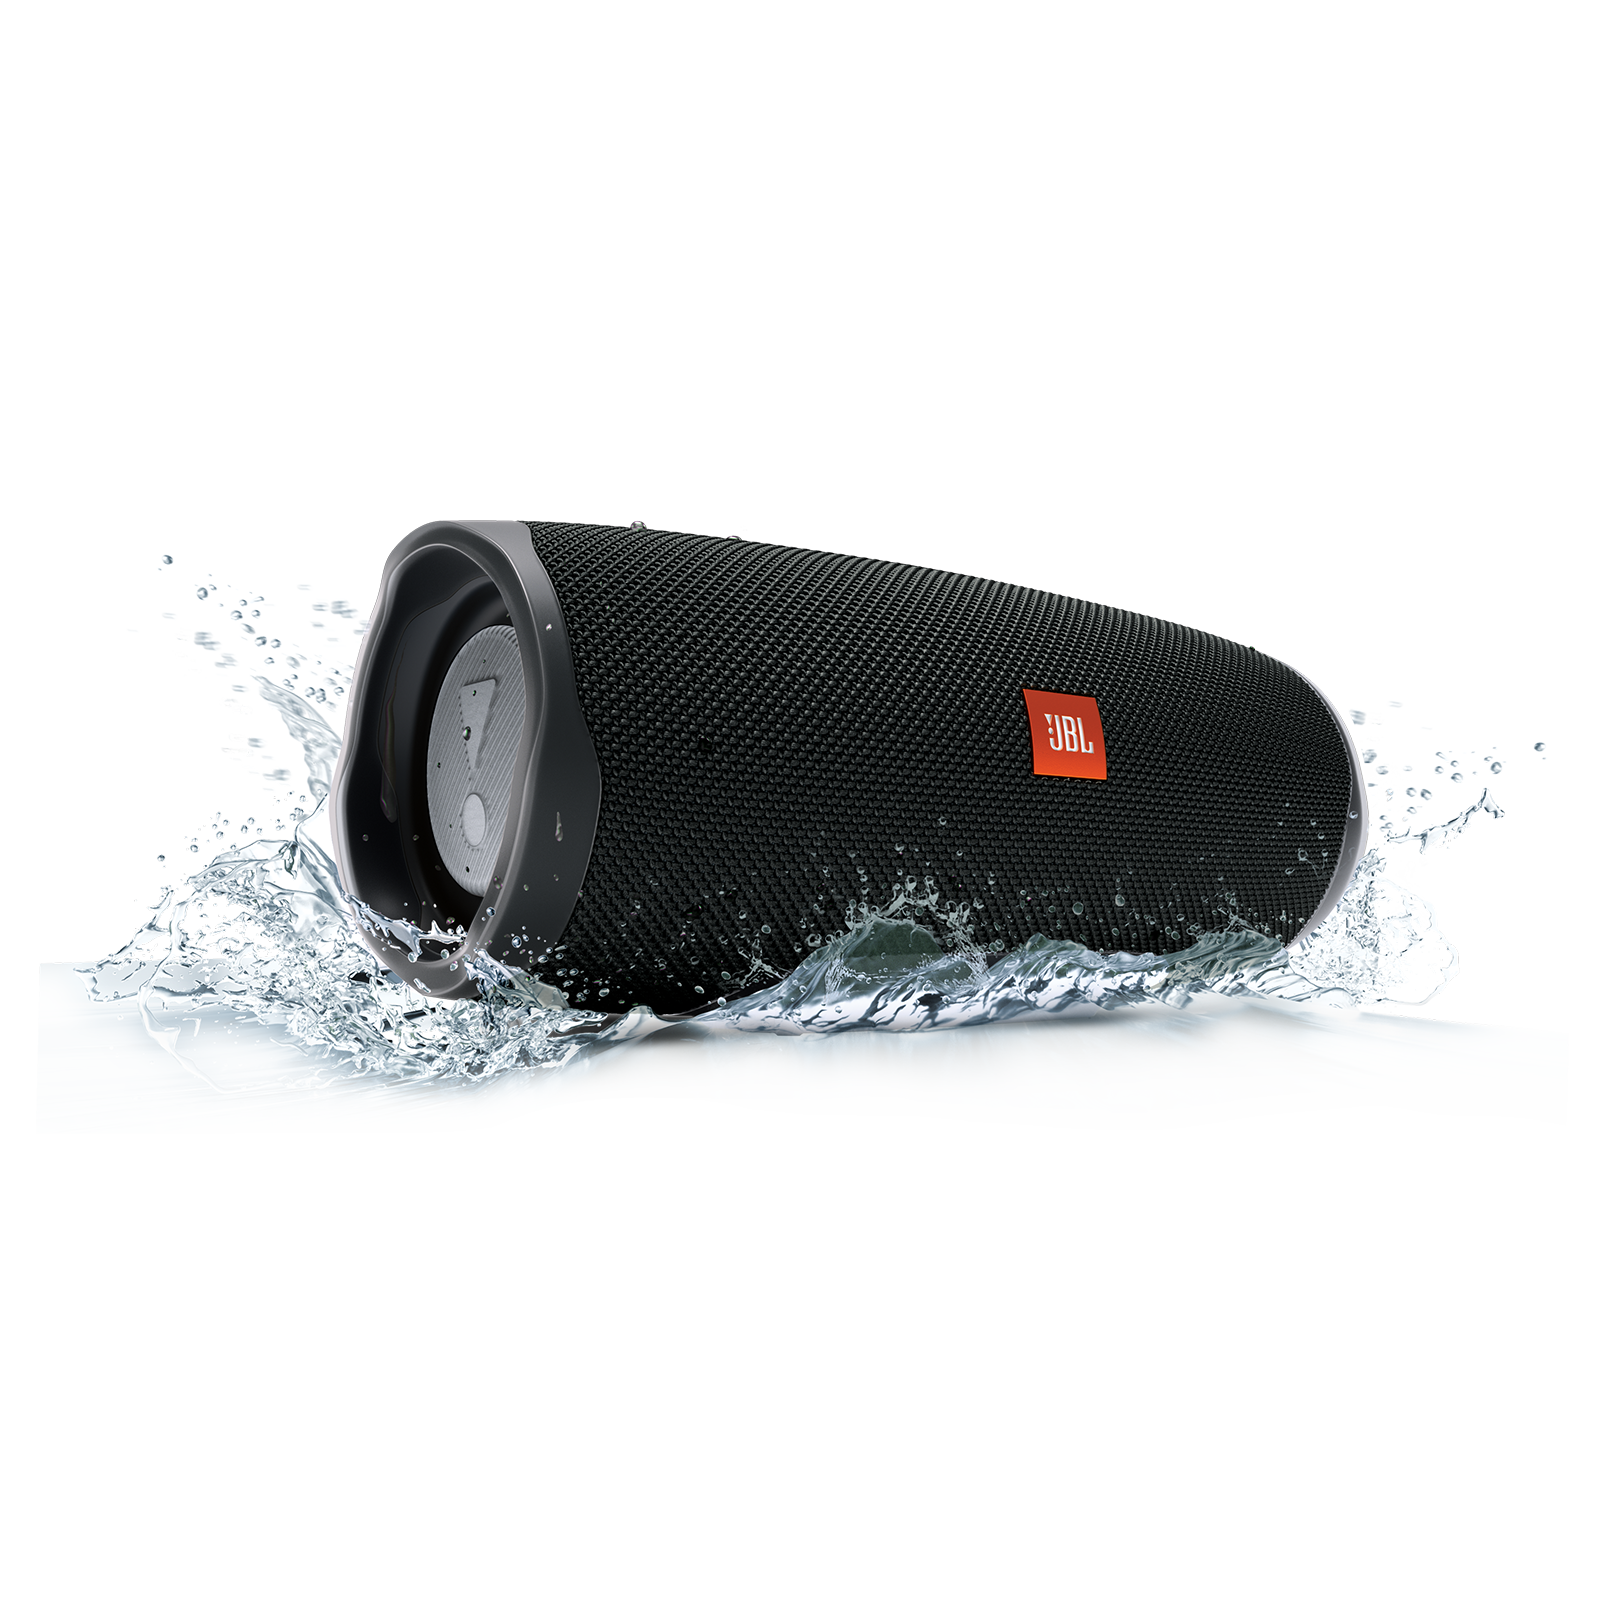 JBL Charge 4 - Black - Portable Bluetooth speaker - Detailshot 5